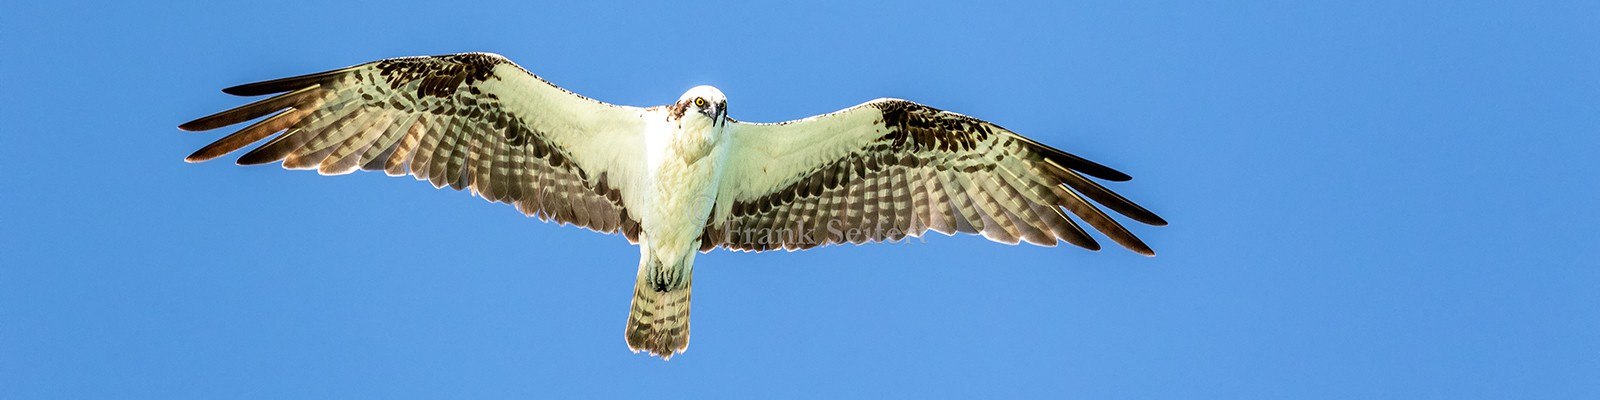 Slider_Fischadler_Osprey_pandion